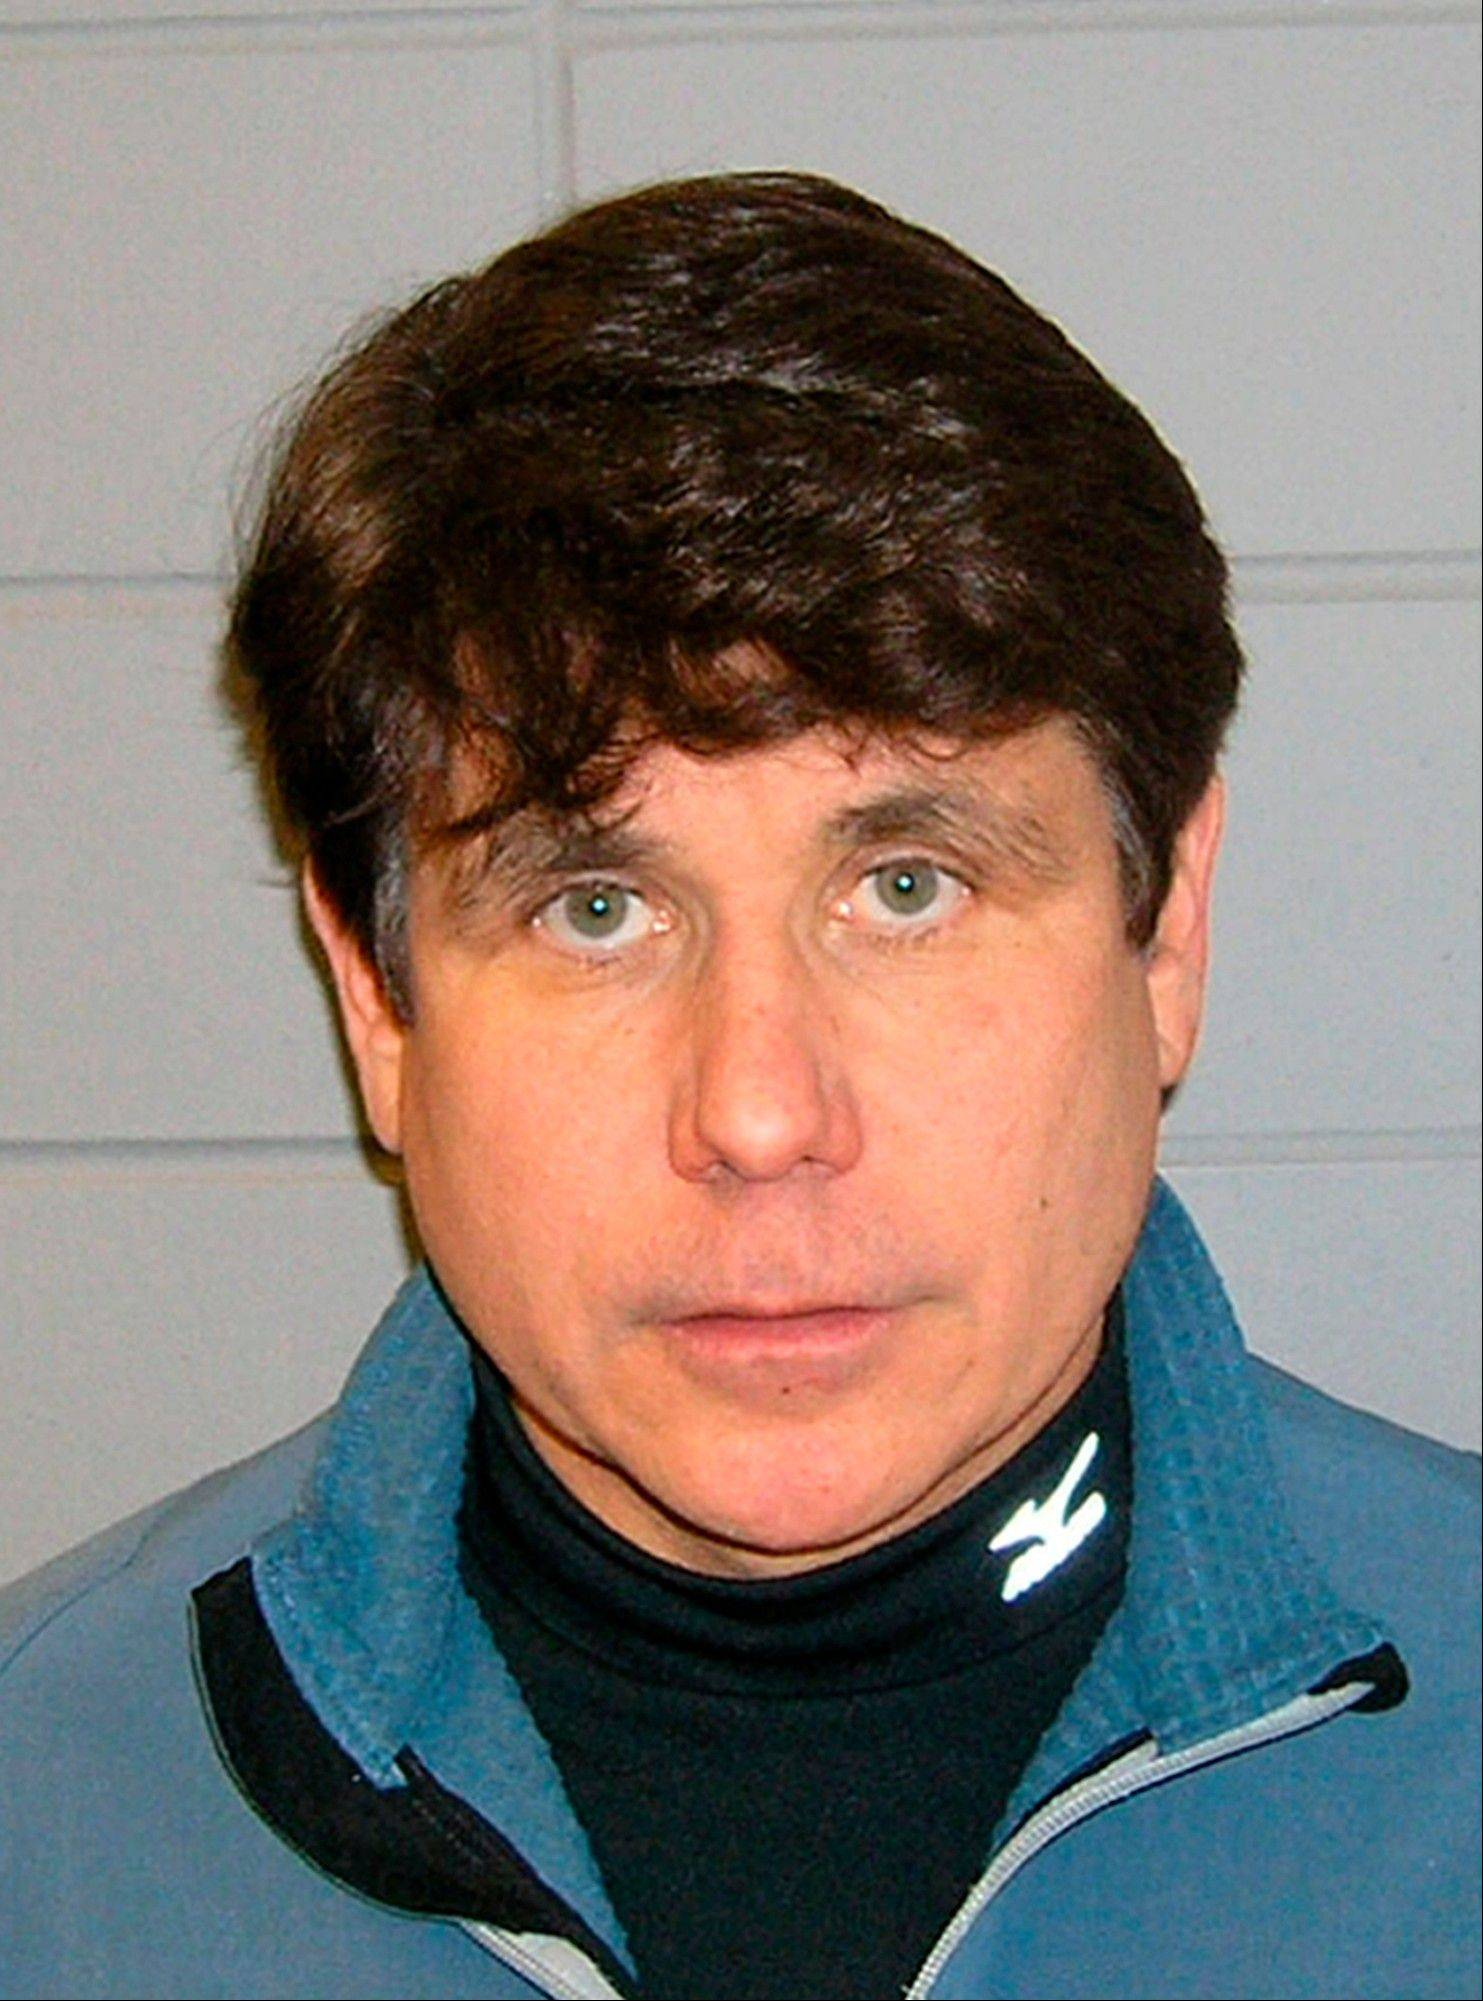 This Dec. 9, 2008, Department of Justice file booking photo shows Rod Blagojevich following his arrest in Chicago.